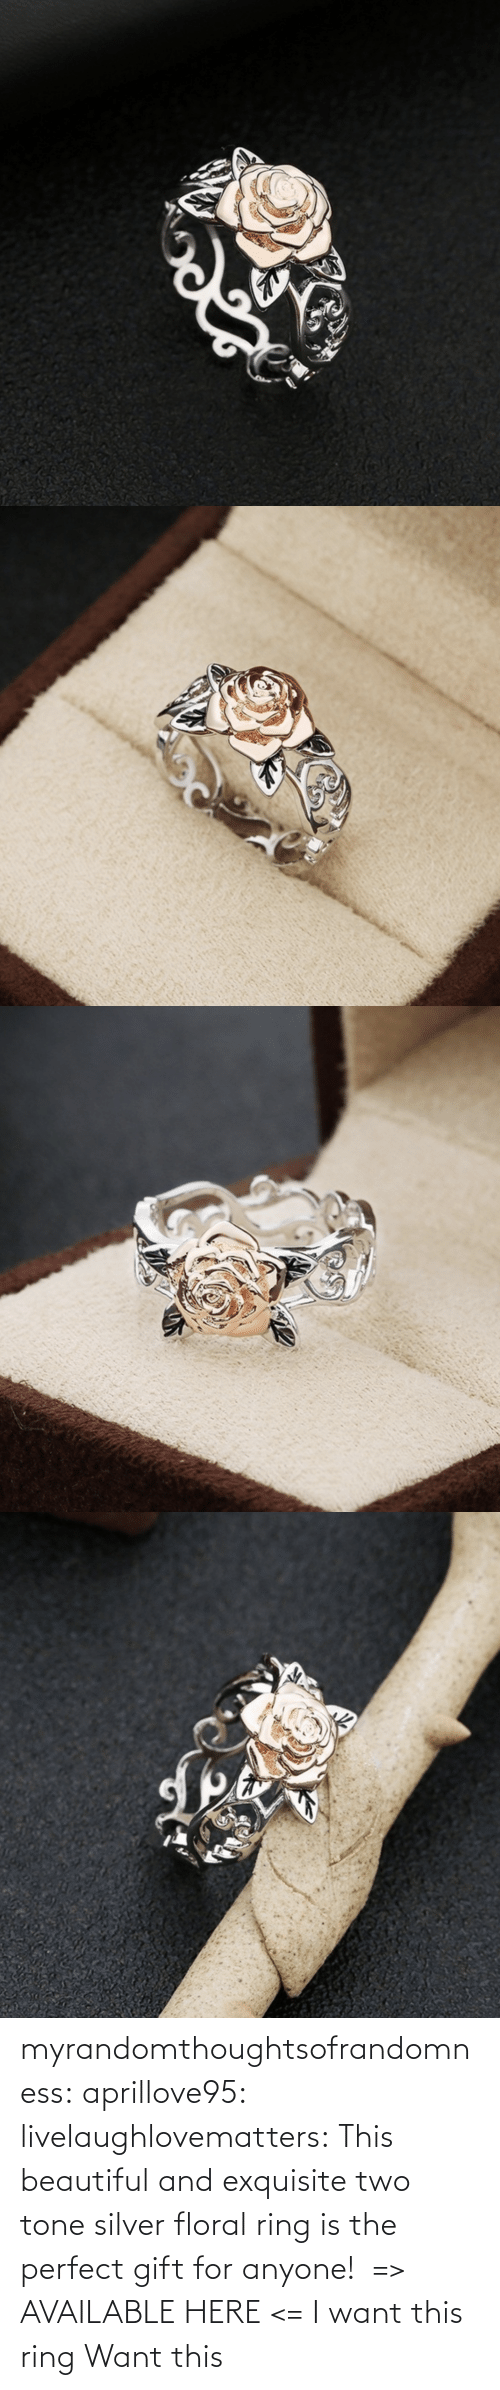 two: myrandomthoughtsofrandomness:  aprillove95: livelaughlovematters:  This beautiful and exquisite two tone silver floral ring is the perfect gift for anyone! => AVAILABLE HERE <=    I want this ring     Want this